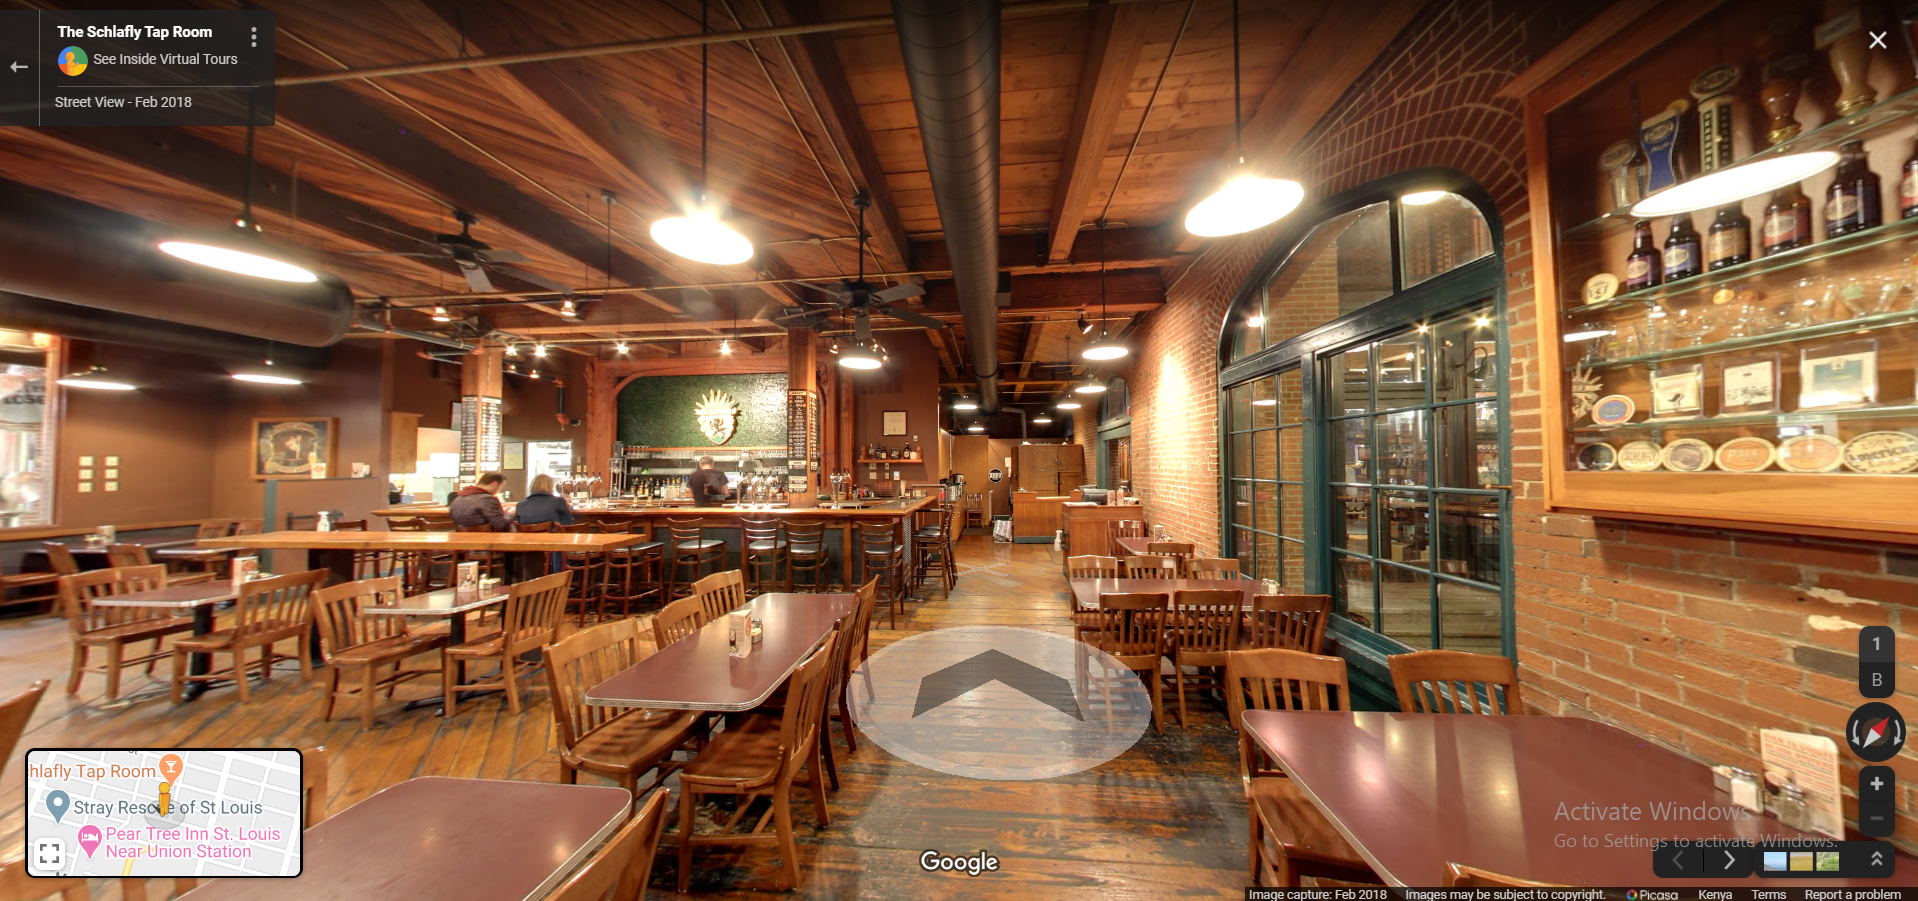 The Schlafly Tap Room - St. Louis